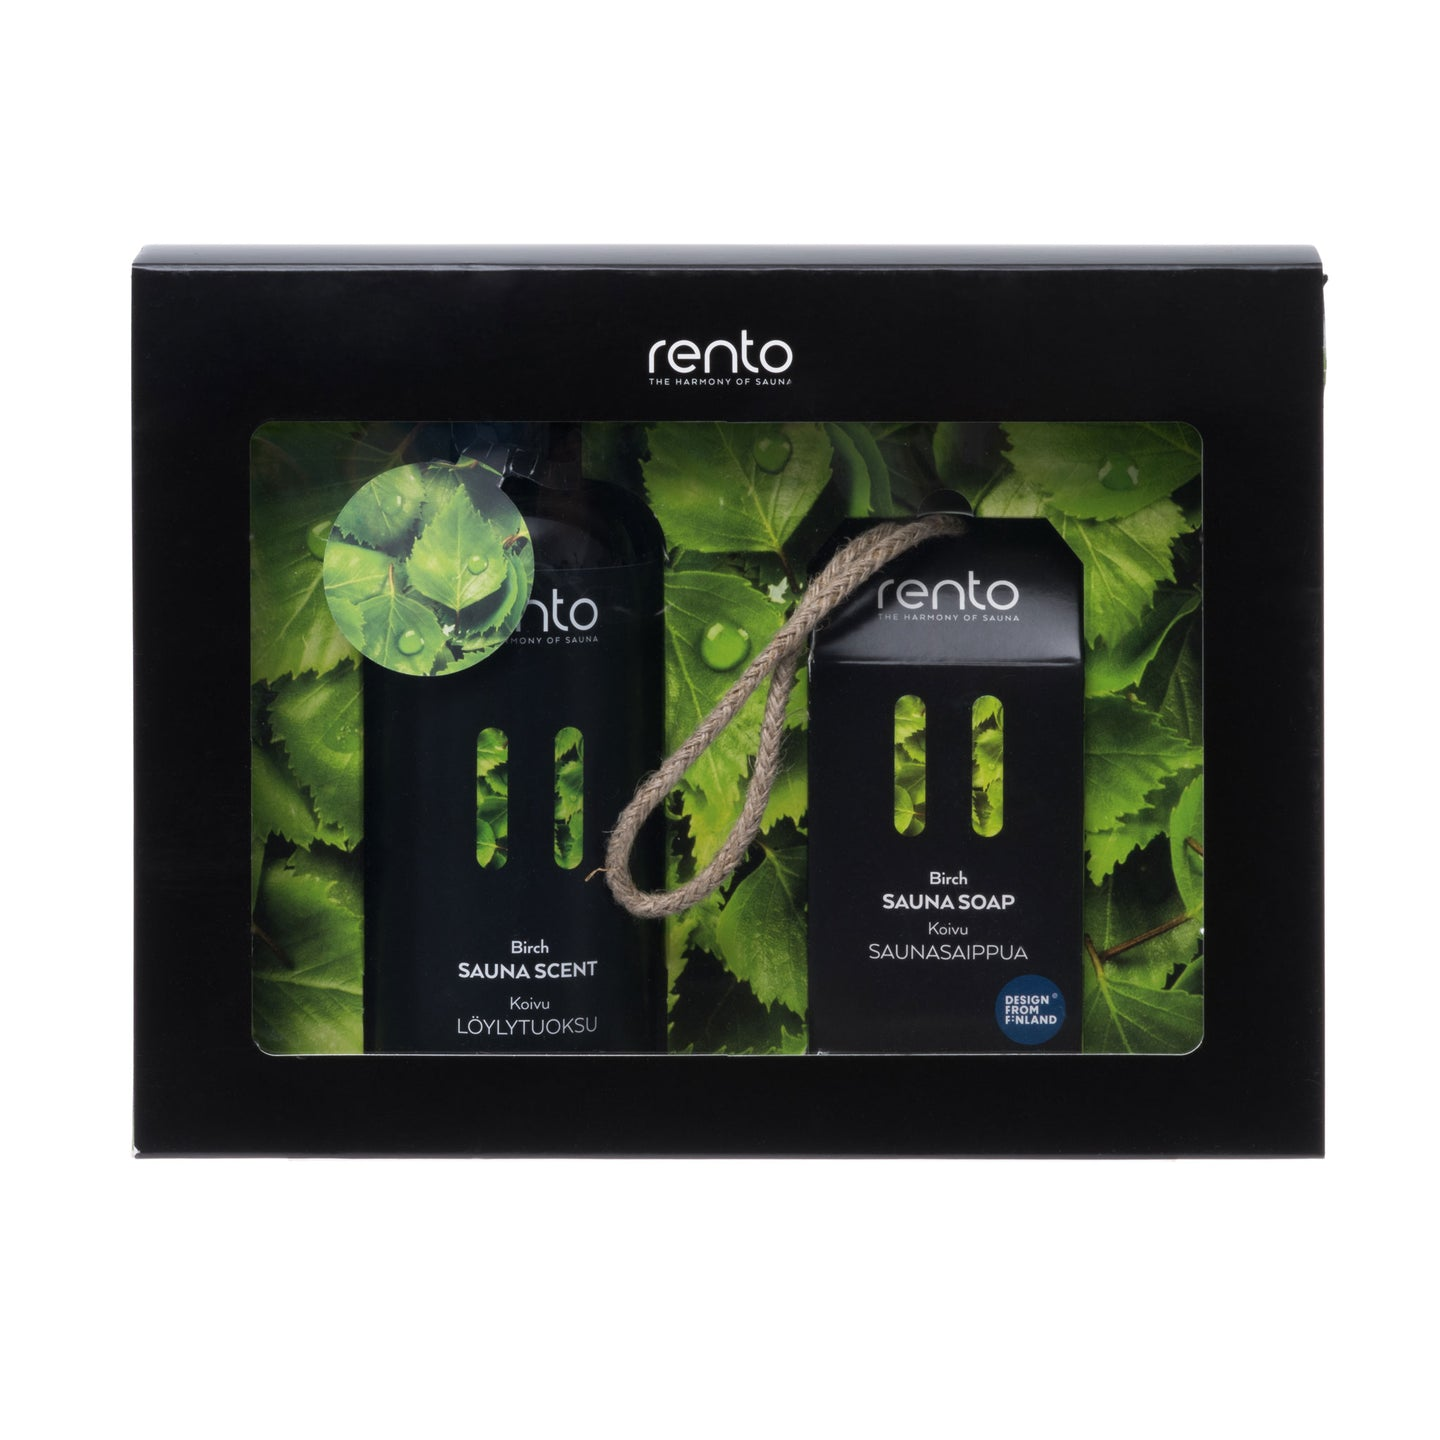 Rento Birch Sauna Scent Sauna Oil 400ml & Biodegradable Sauna Soap 150g Gift Set  Sauna Scents Finnmark Sauna